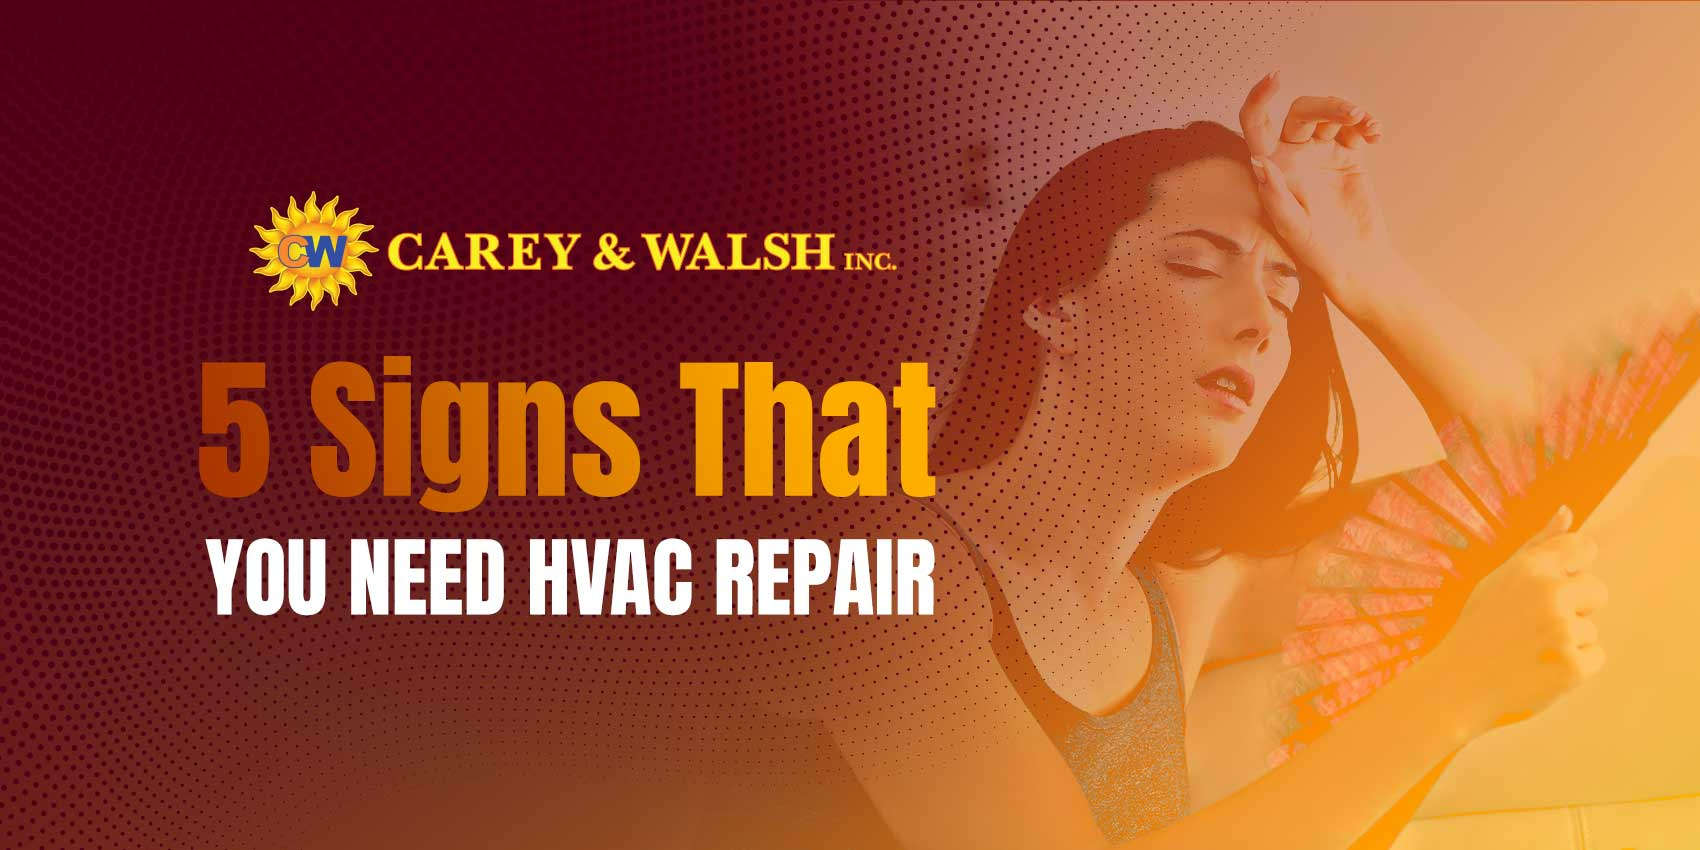 5 Signs That You Need HVAC Repair